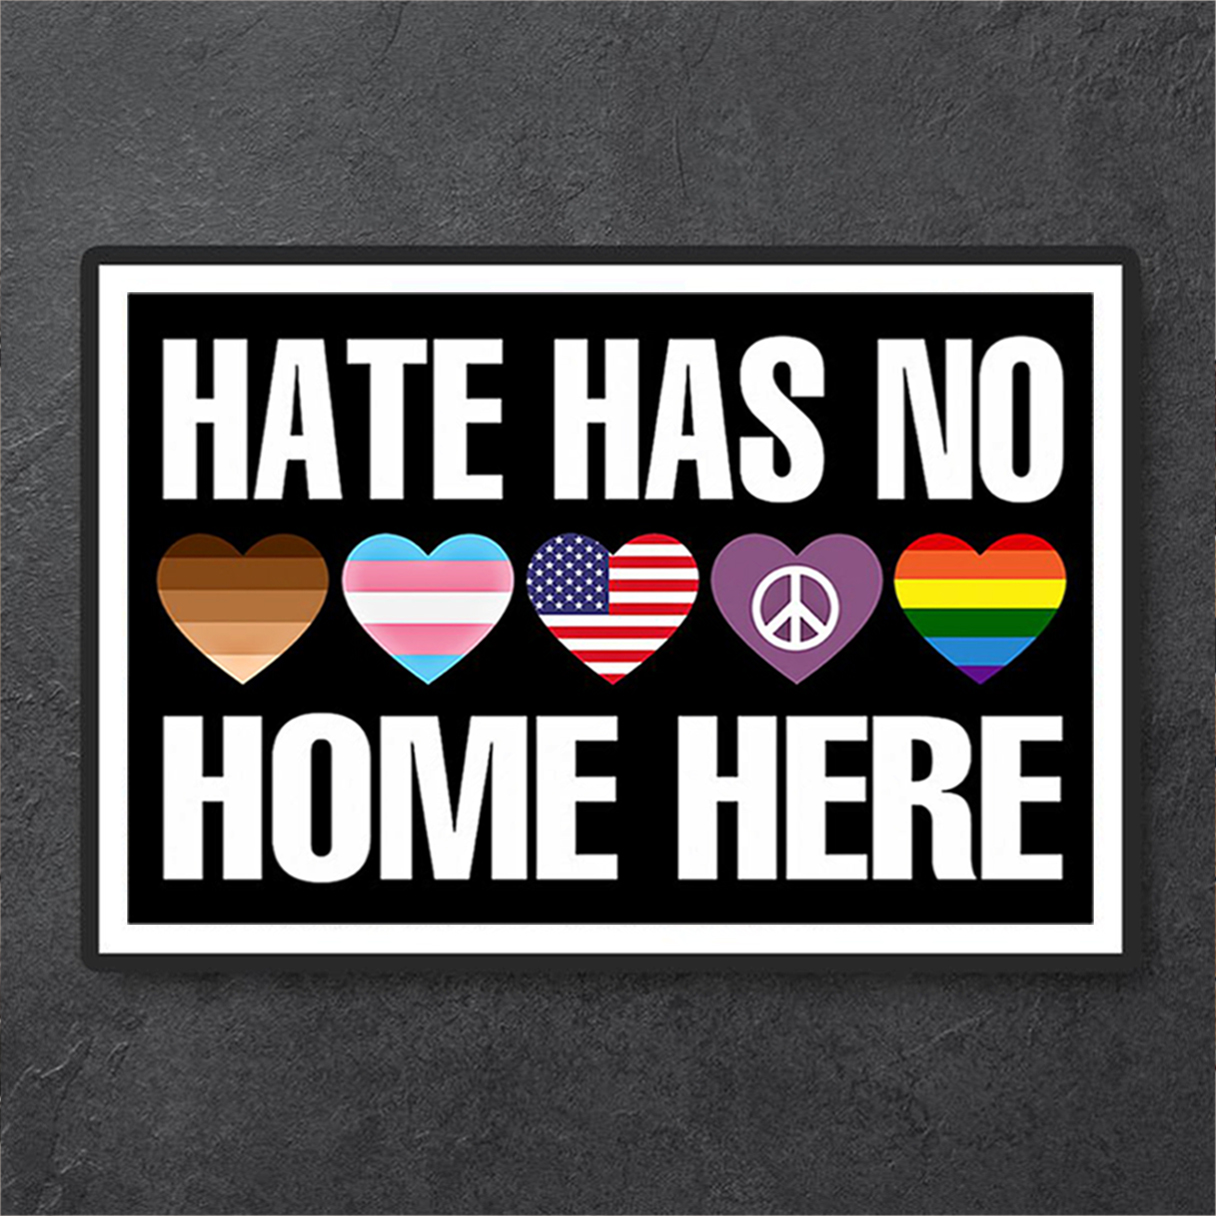 Hate has no home here poster A1